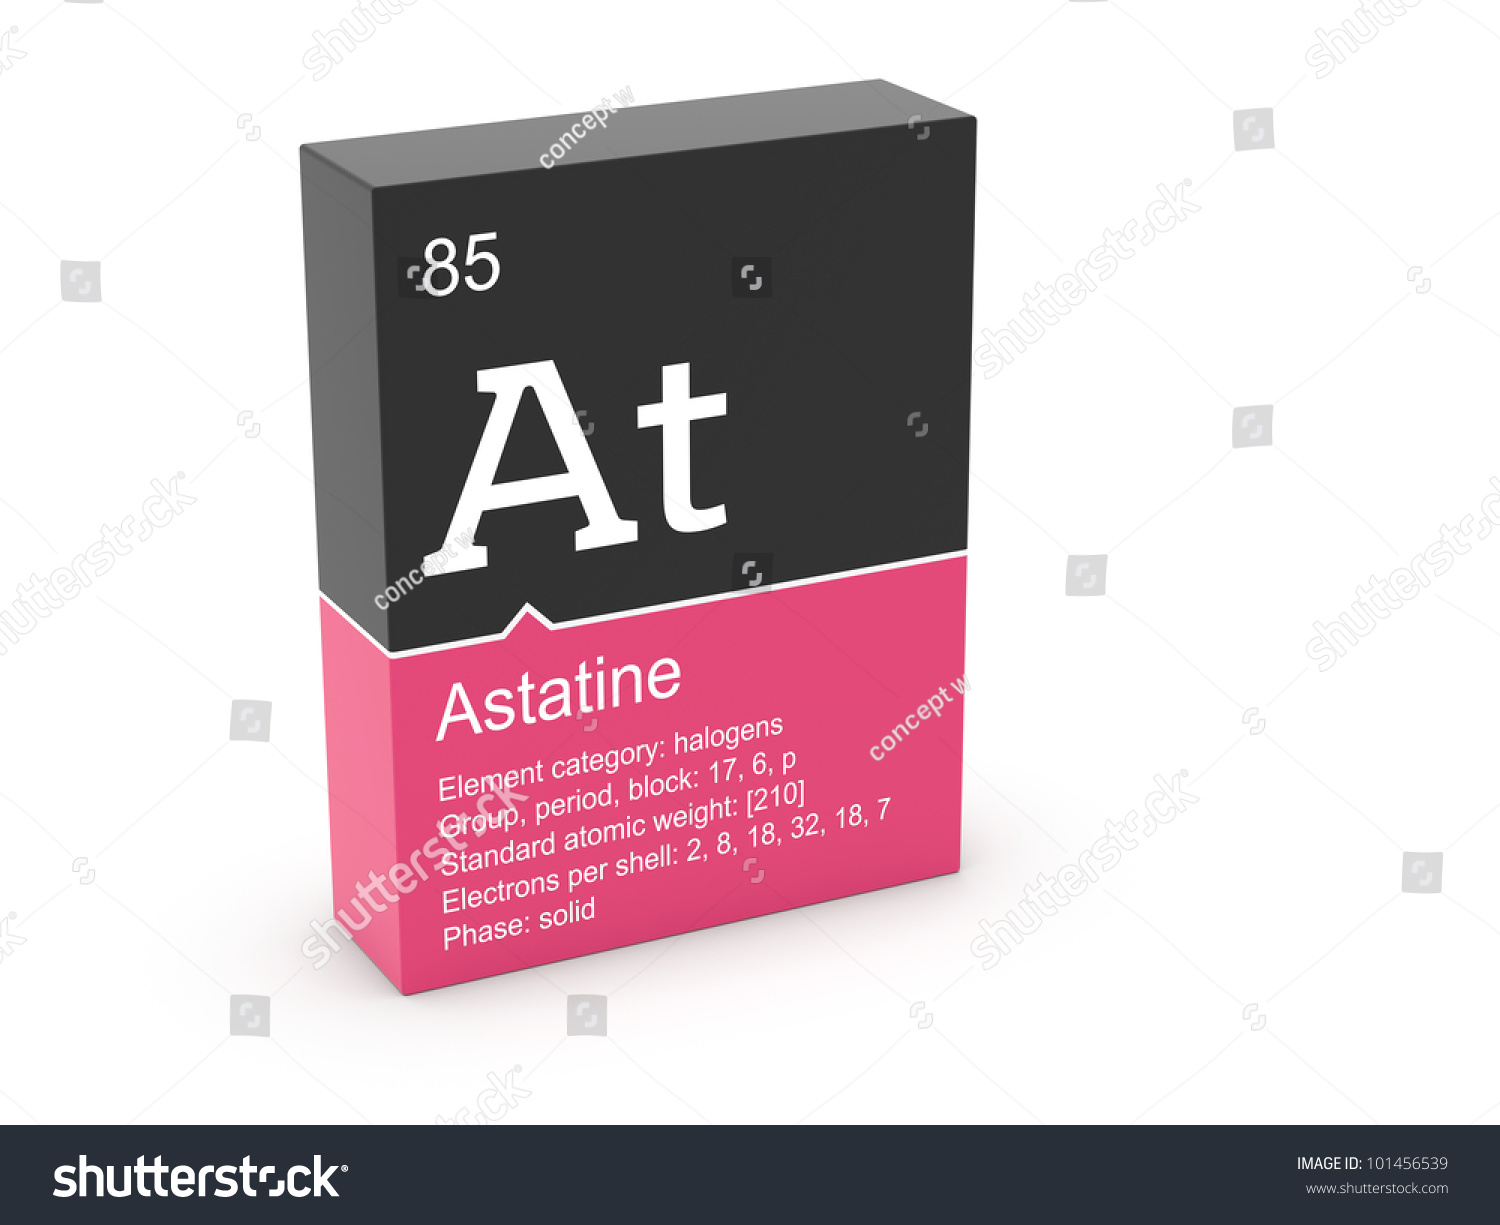 Astatine mendeleevs periodic table stock illustration 101456539 astatine from mendeleevs periodic table urtaz Image collections